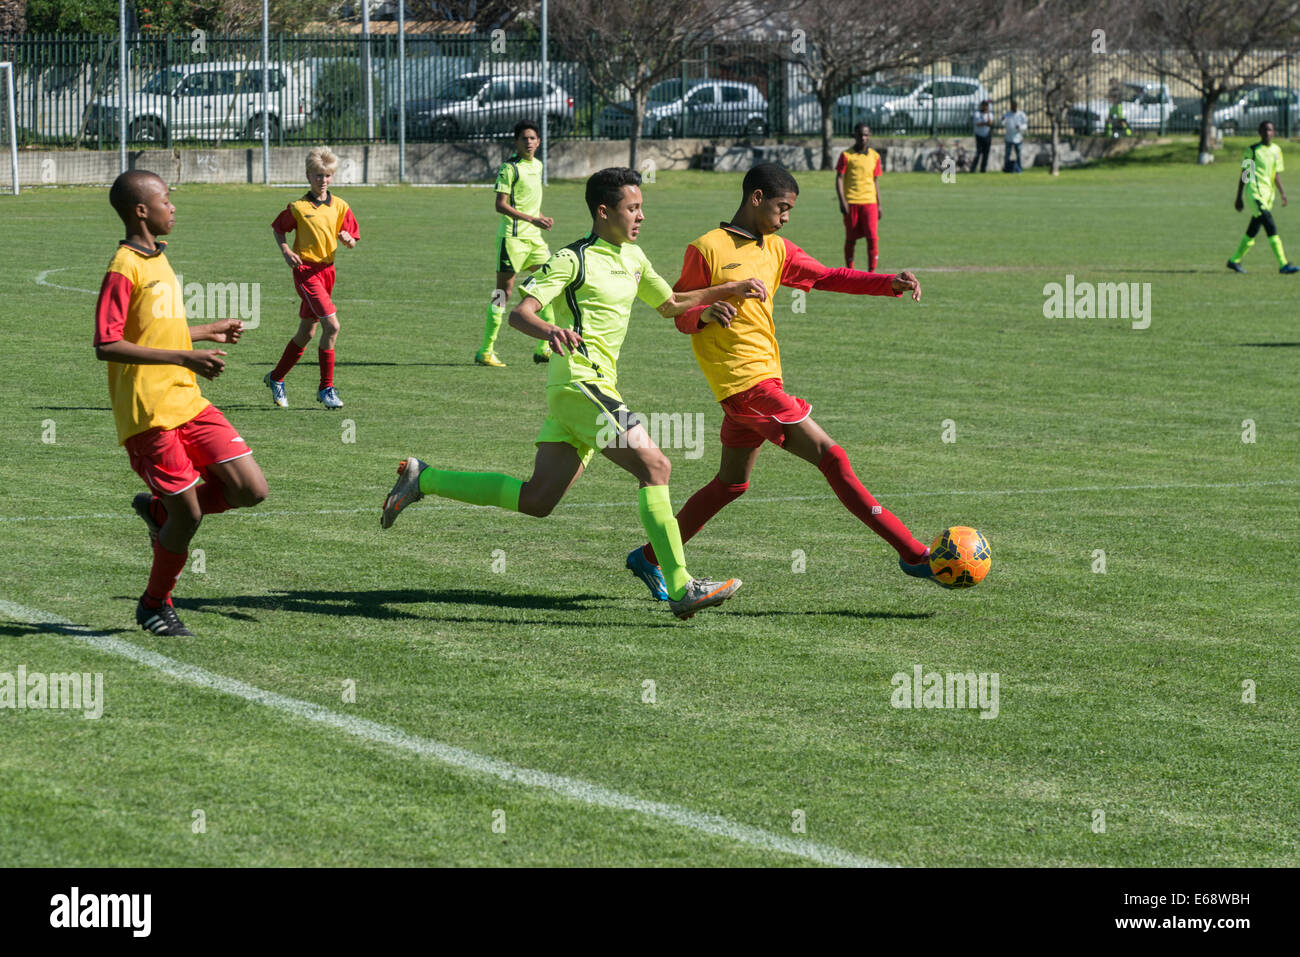 Football match of Under 15 youth teams, Cape Town, South Africa - Stock Image